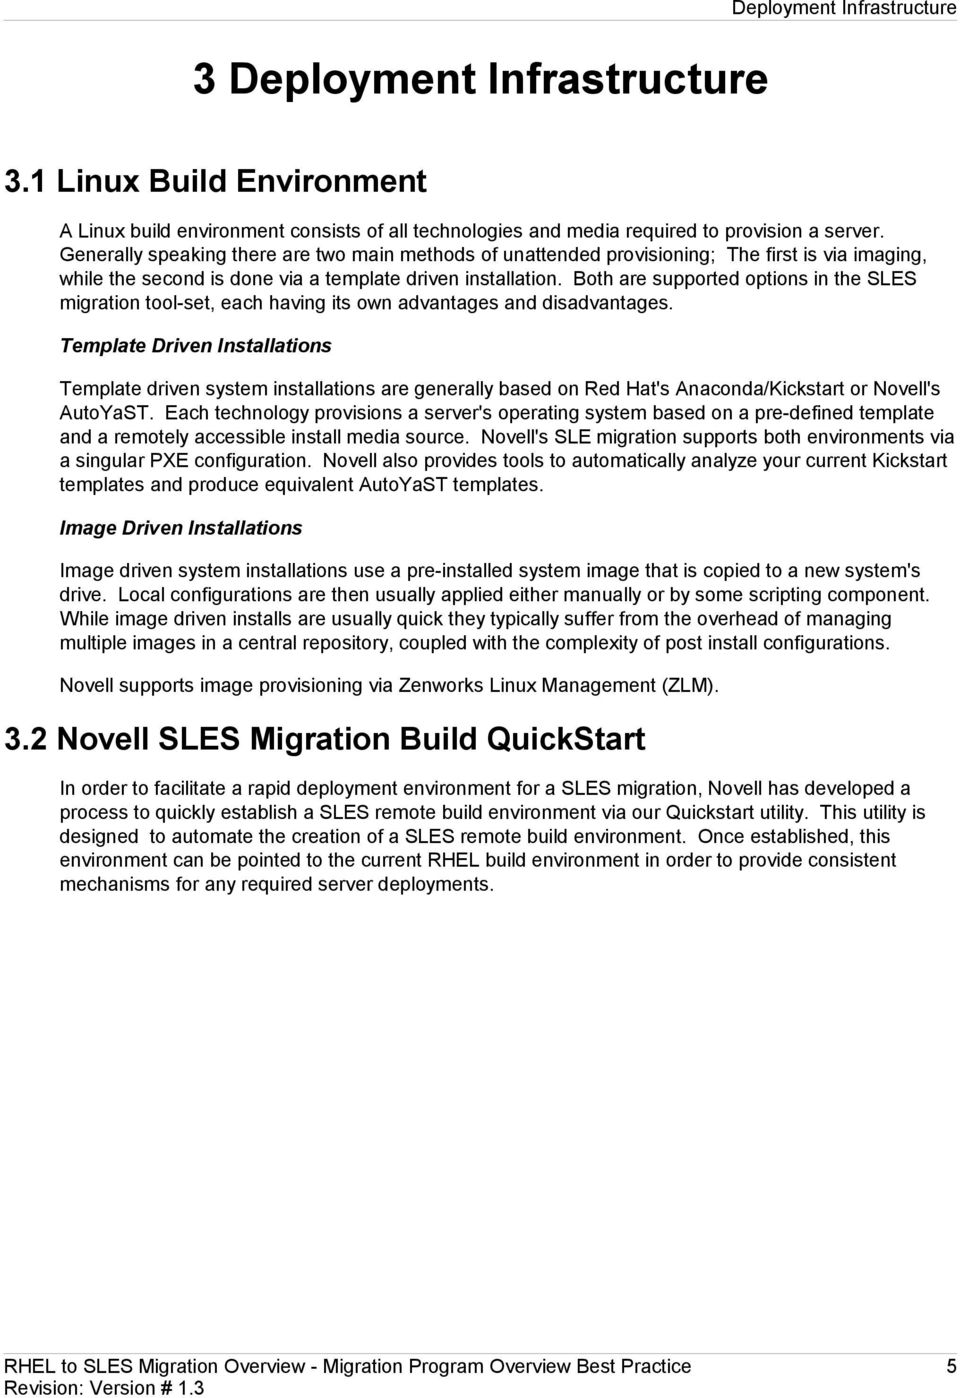 Both are supported options in the SLES migration tool-set, each having its own advantages and disadvantages.